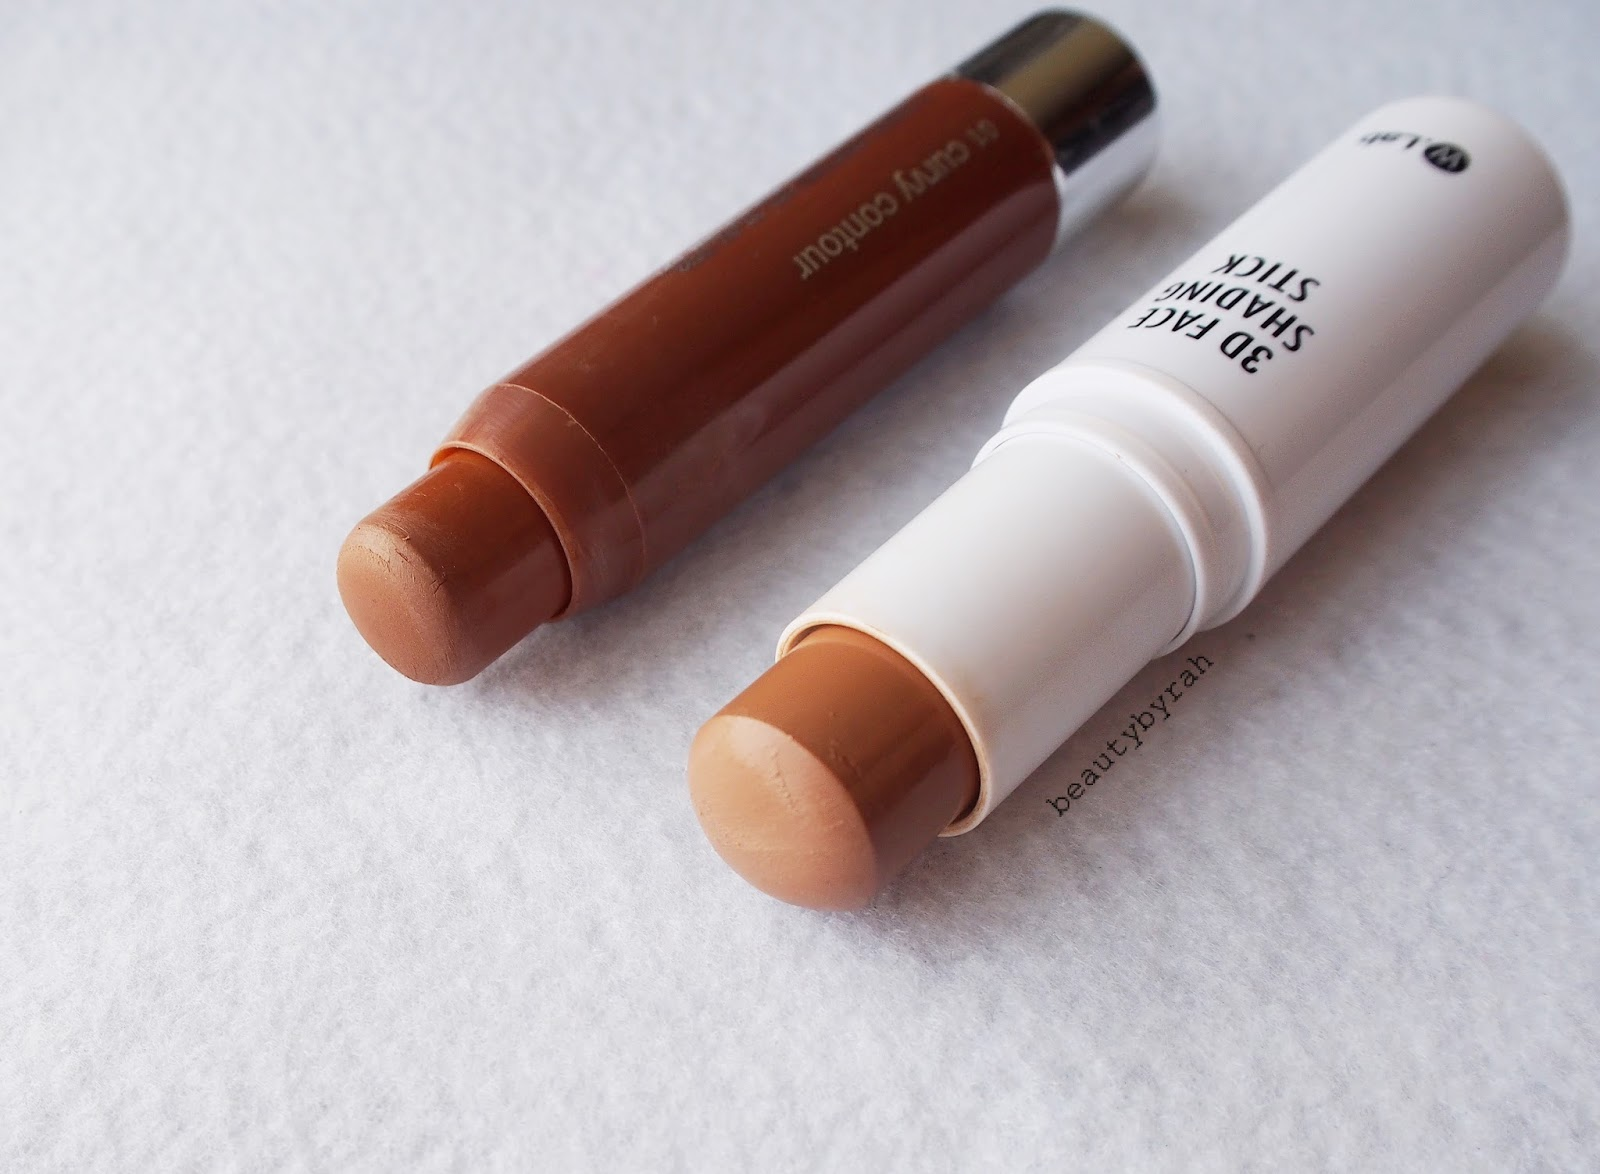 w.lab 3D Face Shading Stick Review vs clinique chubby contour stick